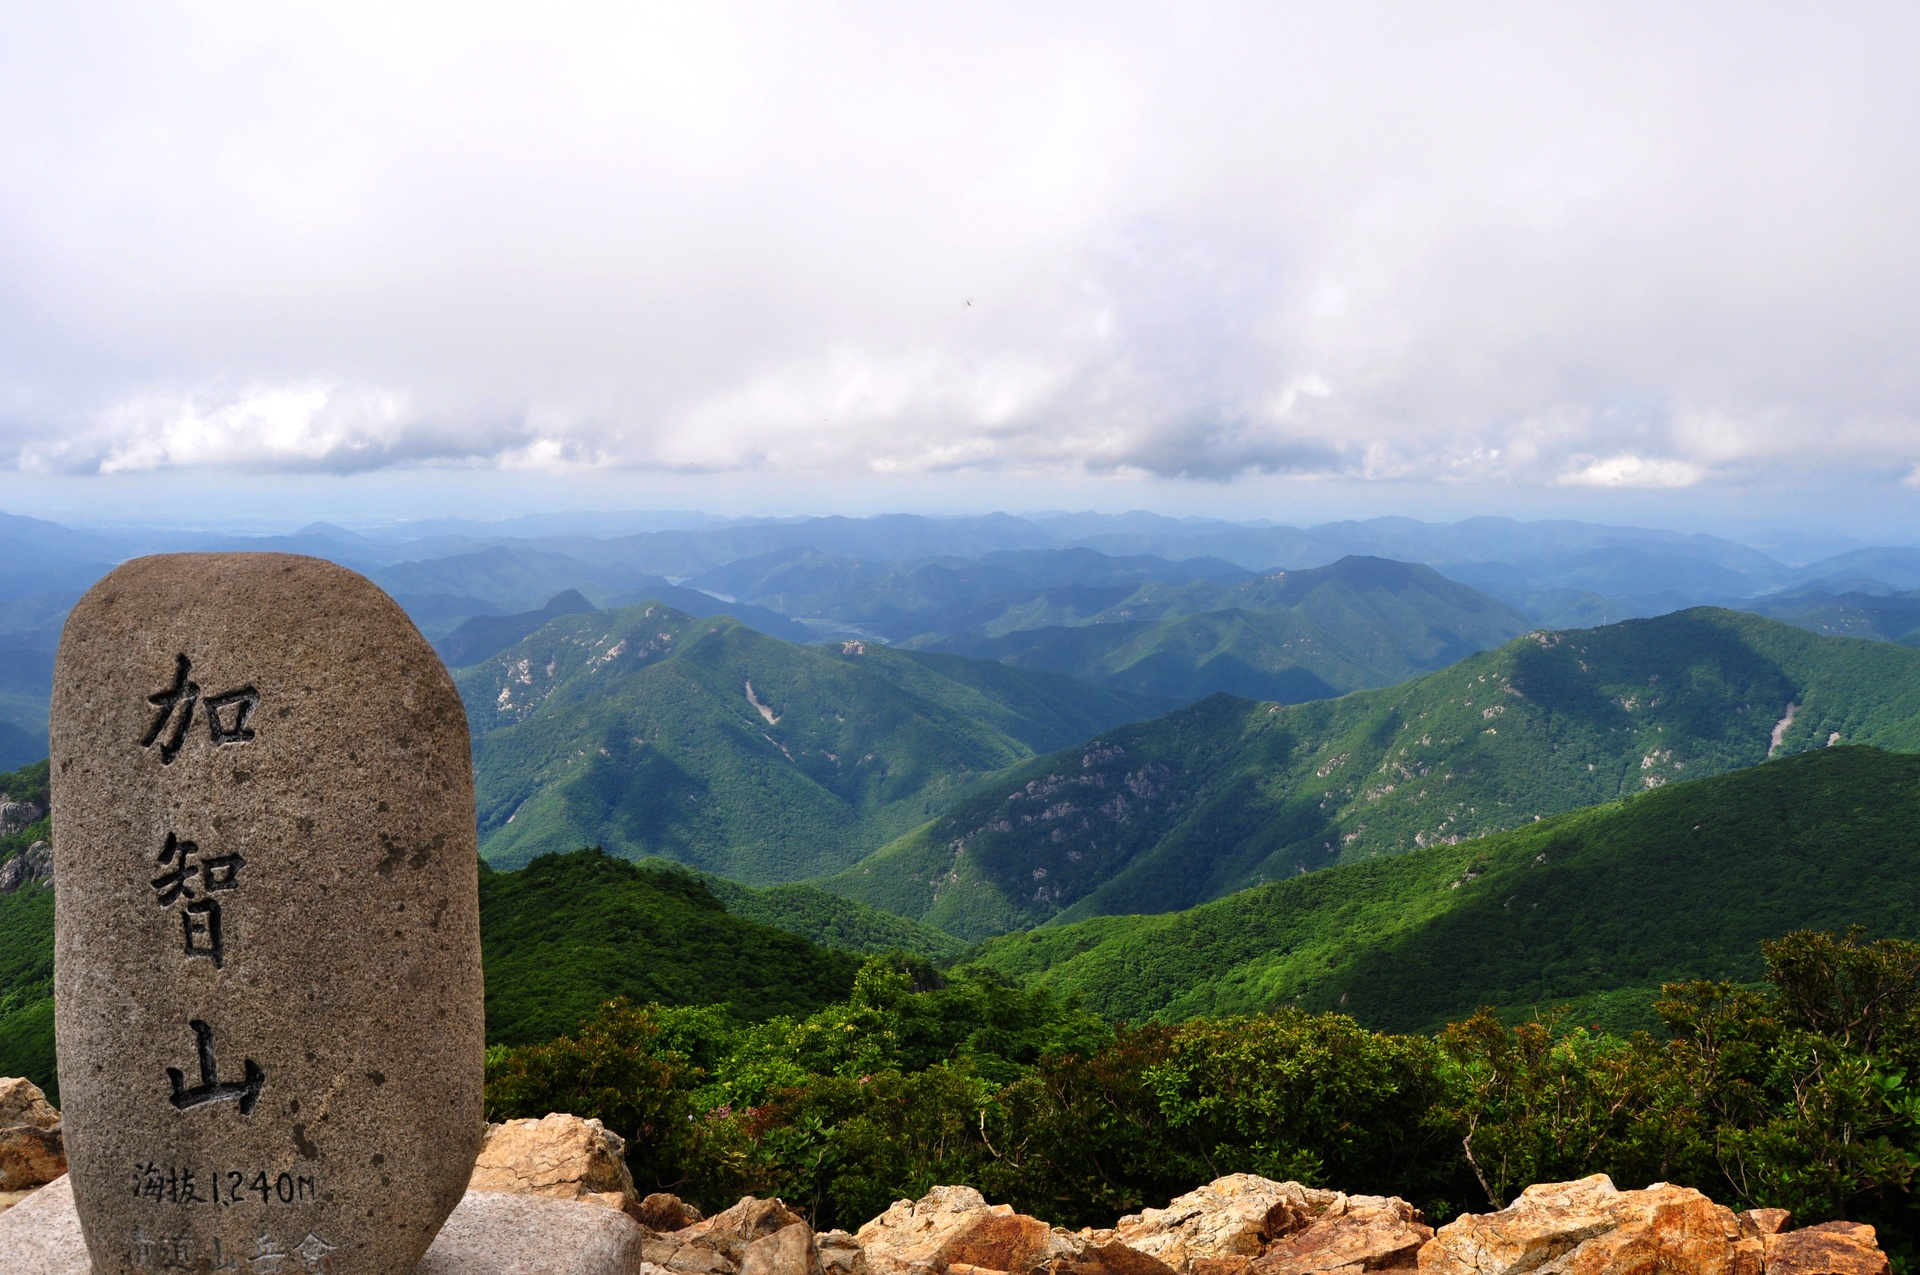 Gaji Peak Monument